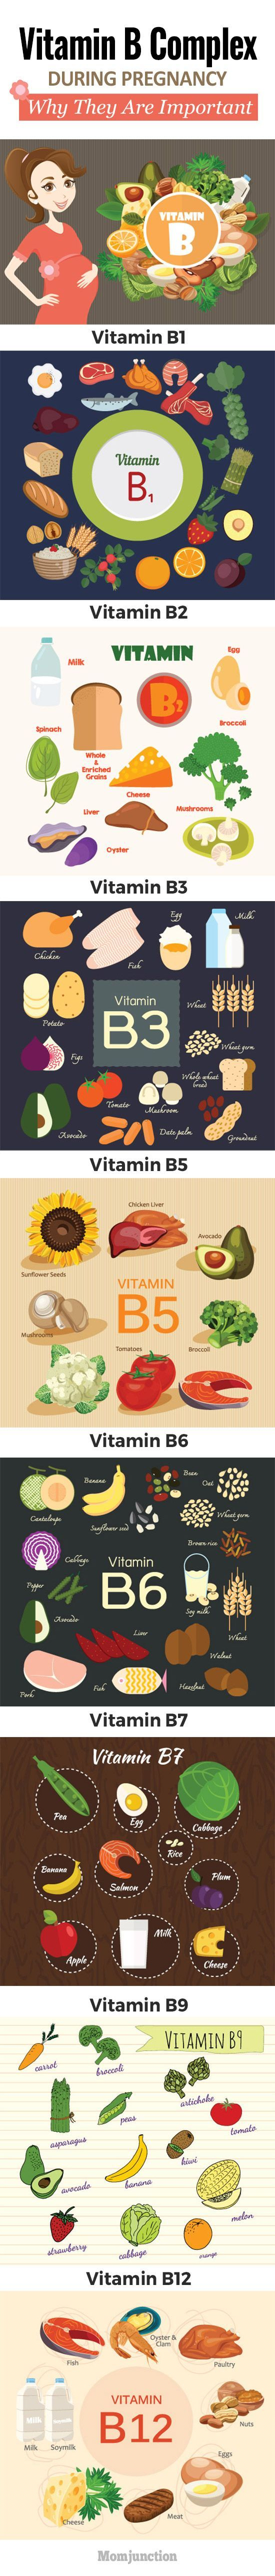 Cong! It's time for you to pile B vitamins. Before that, read to know why Vitamin B complex during pregnancy are so important to include every day. #L4L #animals #instafollow